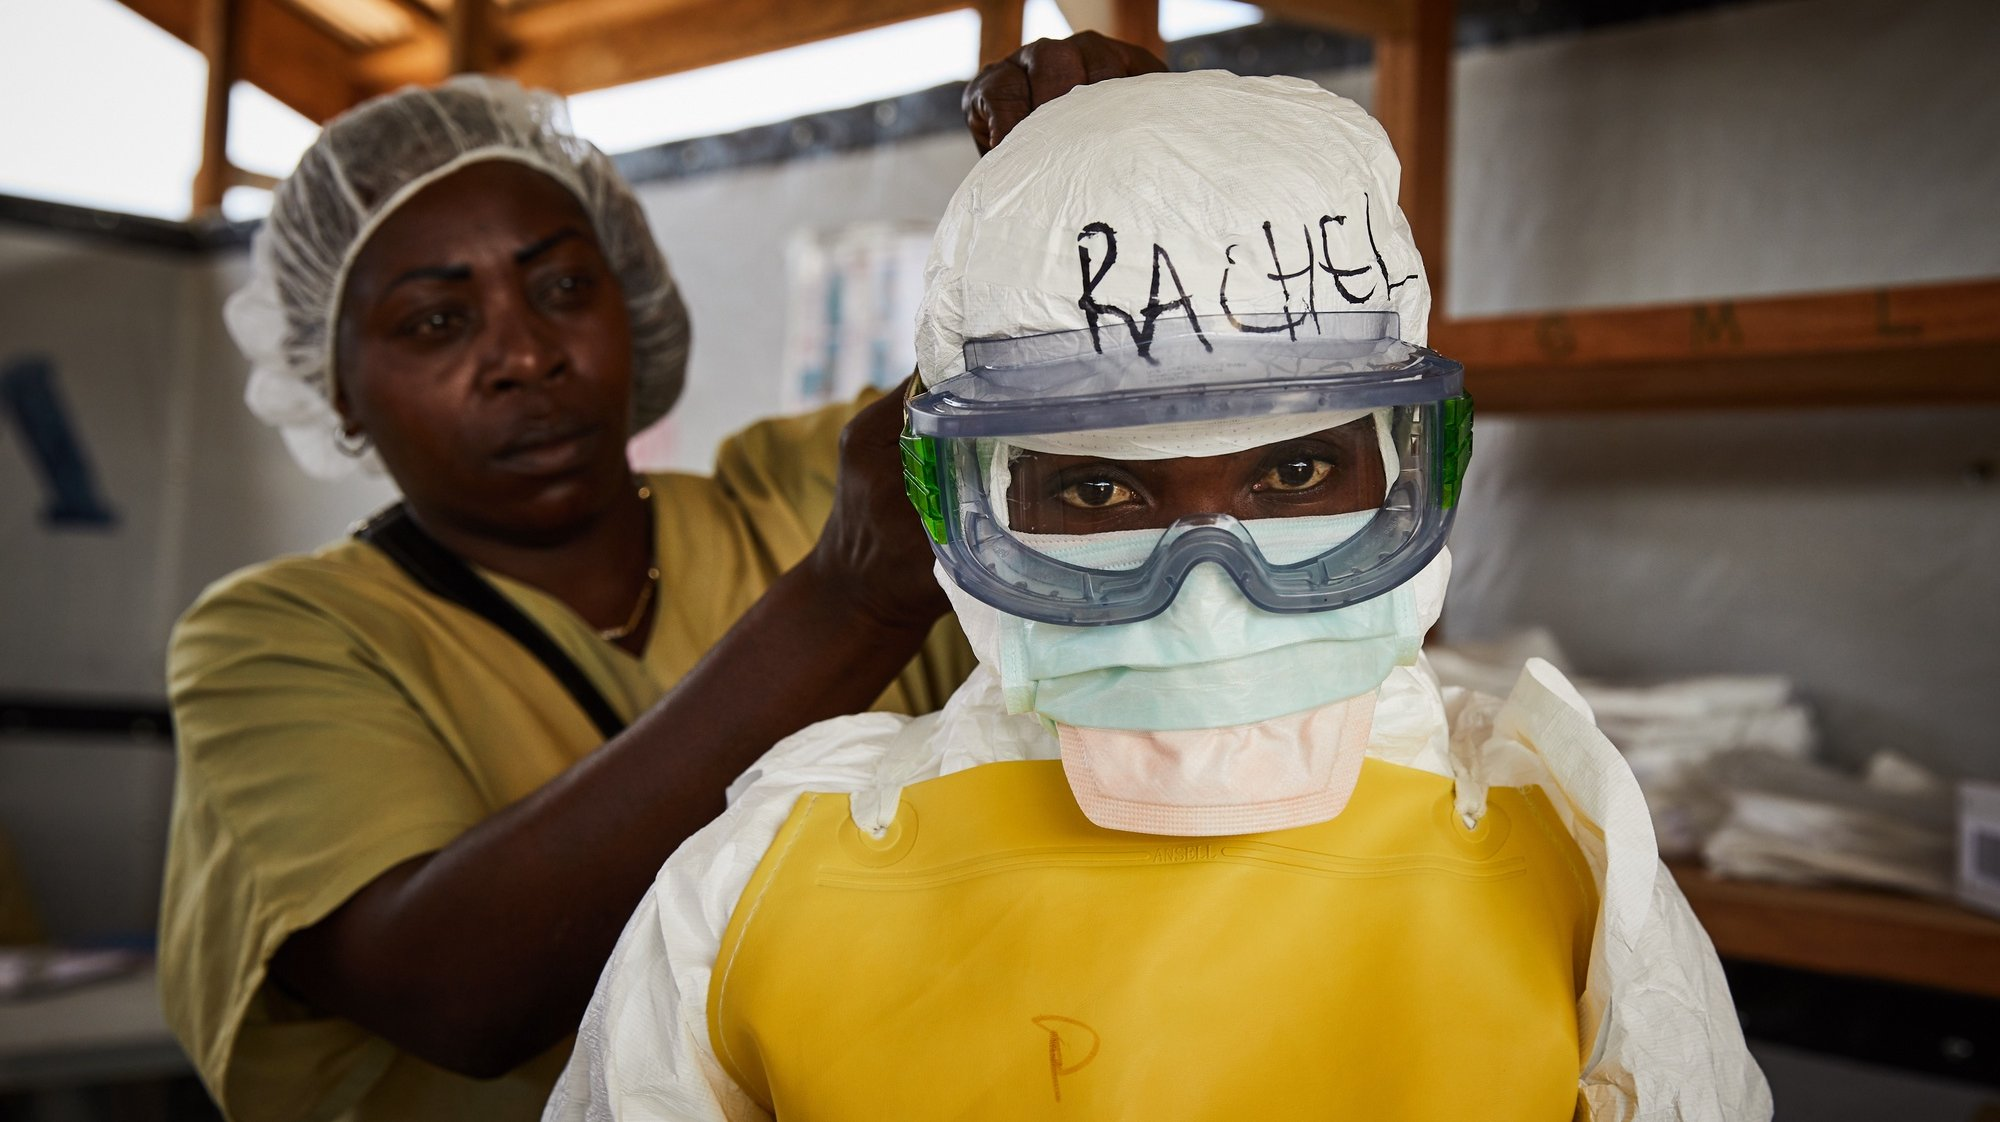 epa08891329 (20/39) Rachel Rukwati suits up in PPE to enter a high-risk treatment zone, at the peak of the Ebola crisis, at a health centre in Beni, North Kivu, Democratic Republic of Congo, 04 May 2019. Rachel was a health worker attached to the Ebola response and has first-hand experience of combating an unfamiliar virus. 'In the Ebola response I was a nurse, I took care of ill people, confirmed, and unconfirmed cases when they were at the CTE.In fact, the time we were entering the high-risk zone, we used to get fear, that fear was pushing us to leave the high-risk zone quickly. And when we wore the PPE costume or the protected material we were feeling muffled, then when you leave, you felt at ease because you return to your familiar feeling, compared to how you just felt breathing. The fear I had, was that I could get contaminated as a nurse. When I went to treatment zones I had fear.Since I left the response, I feel that I haven't recovered my health as it was before… the feeling we used to get in the treatment centers, we sense there are some things we lost.As coronavirus spreads, to the world, from myself as a health worker from Beni, and the Ebola response; I would tell them that when they notice the virus in their town, they should first accept it like a disease, not like politics, they will not be able to fight it like that. When you react to a disease, you will overcome it, using measures and precautions.' EPA/Hugh Kinsella Cunningham ATTENTION EDITORS / MANDATORY CREDIT : This story was produced in partnership with the Pulitzer Center -- For the full PHOTO ESSAY text please see Advisory Notice epa...